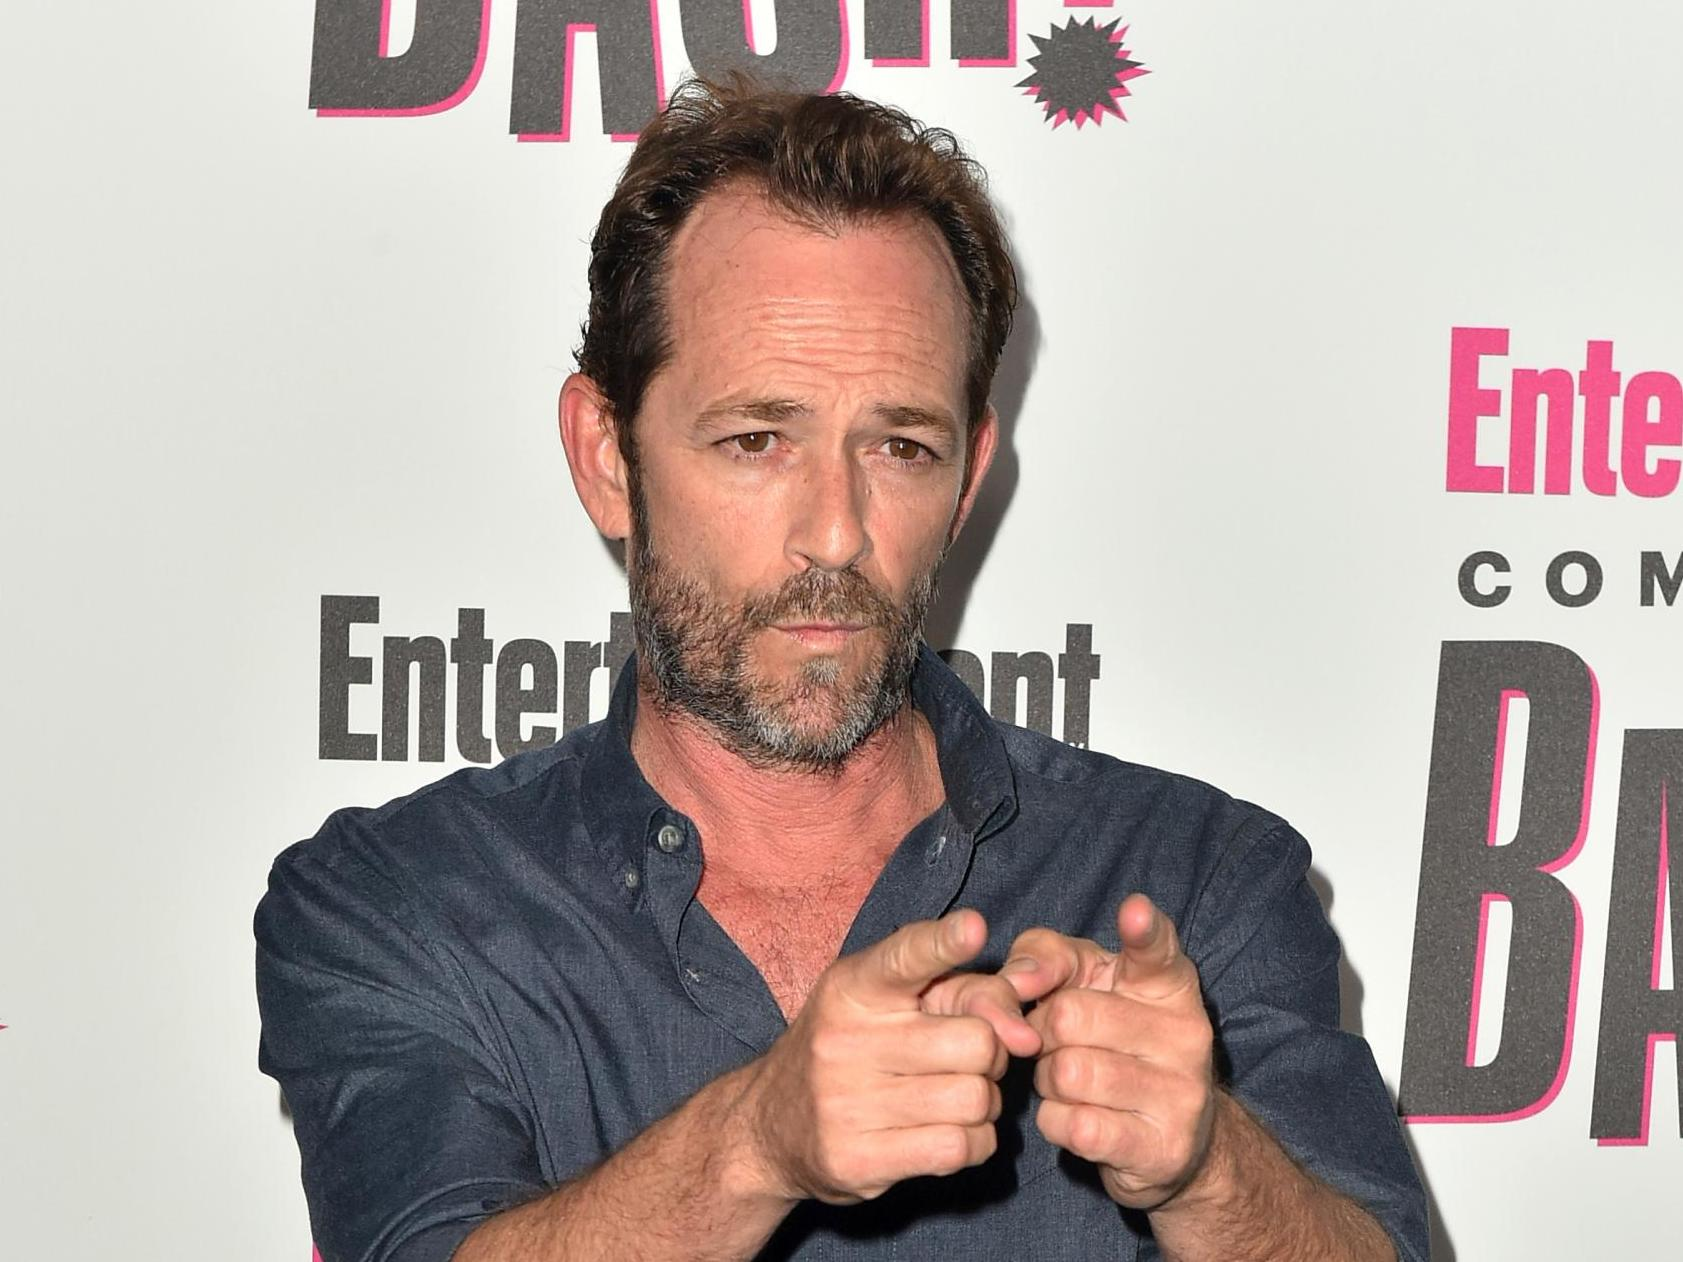 Luke Perry death: Colin Hanks shares incredible balloon story about late Riverdale actor